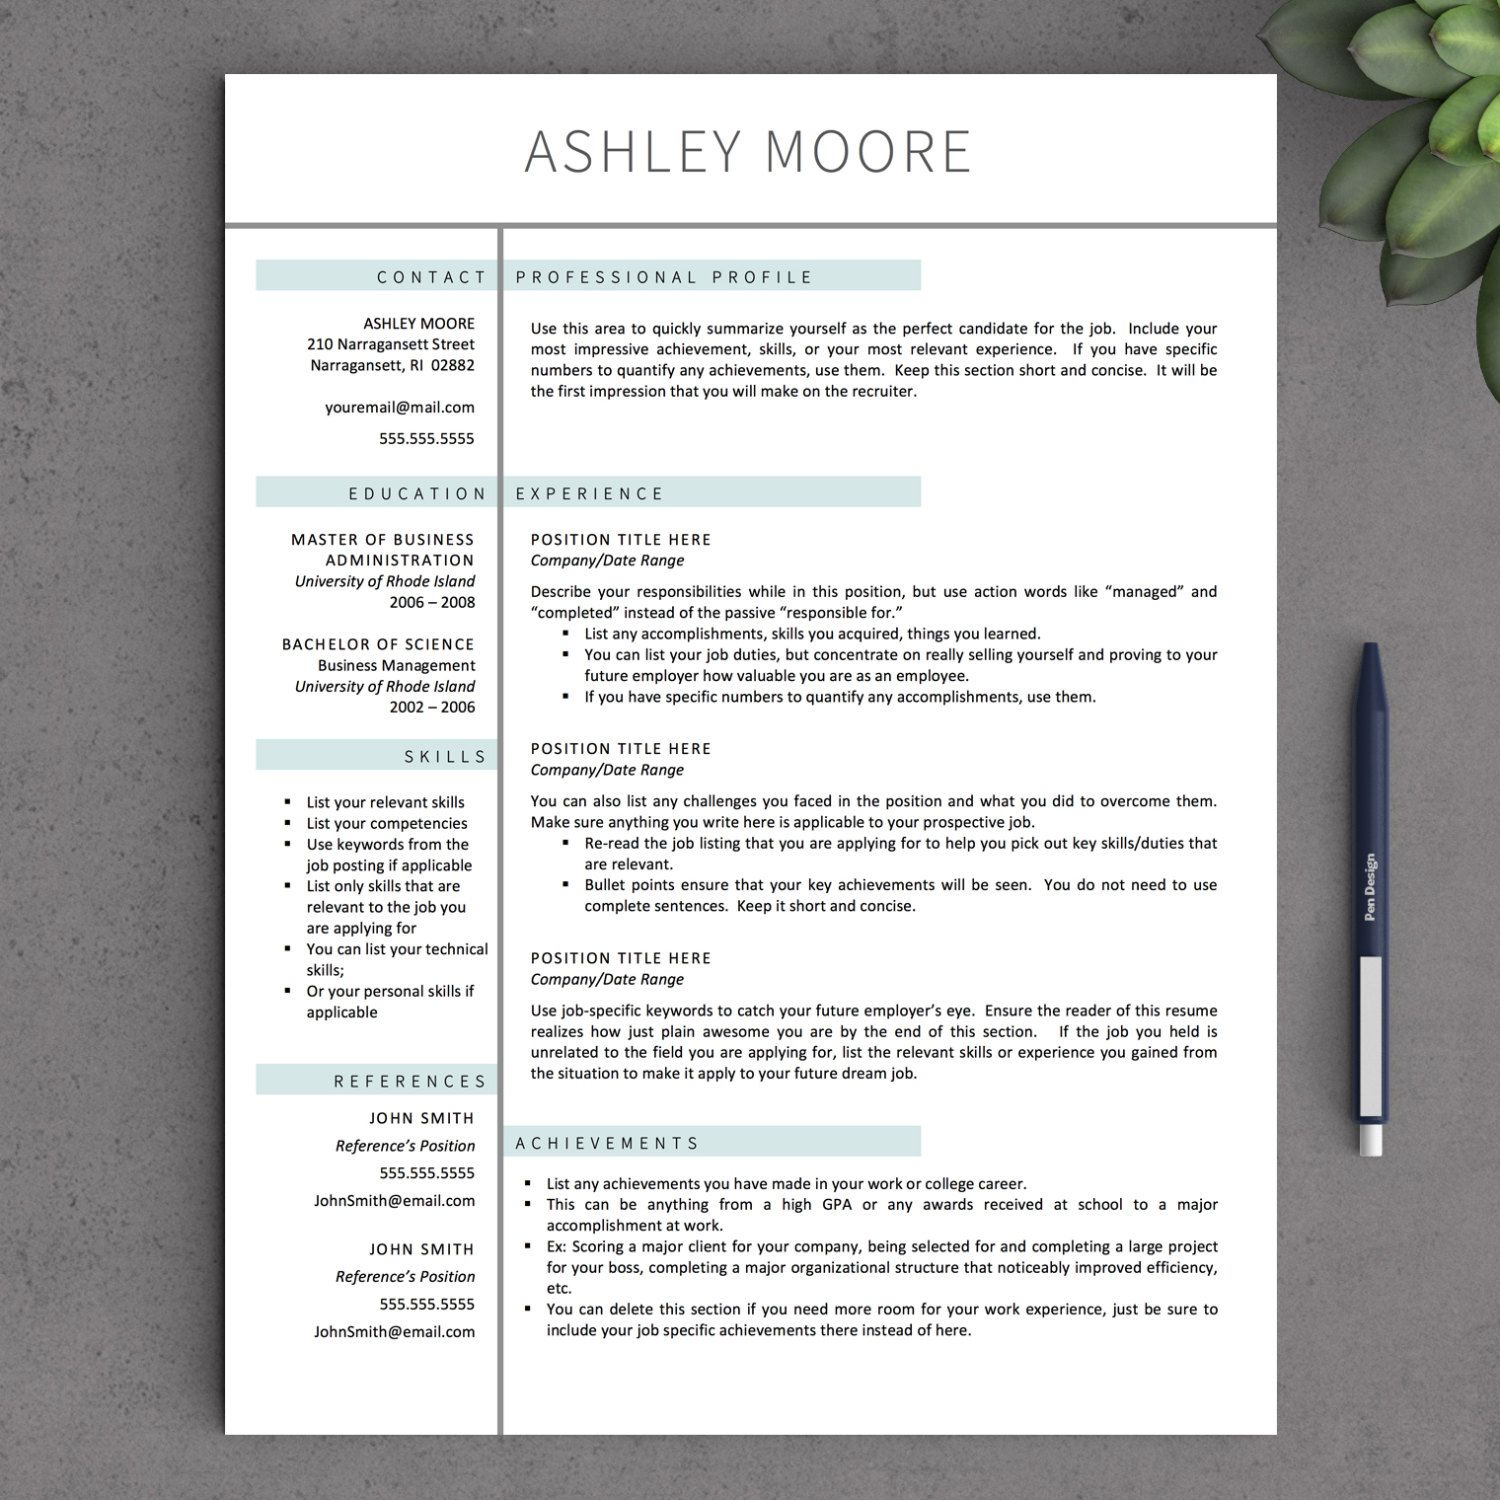 Apple Pages Resume Template Download Apple Pages Resume Template Download,  Appleu2026  How To Download A Resume